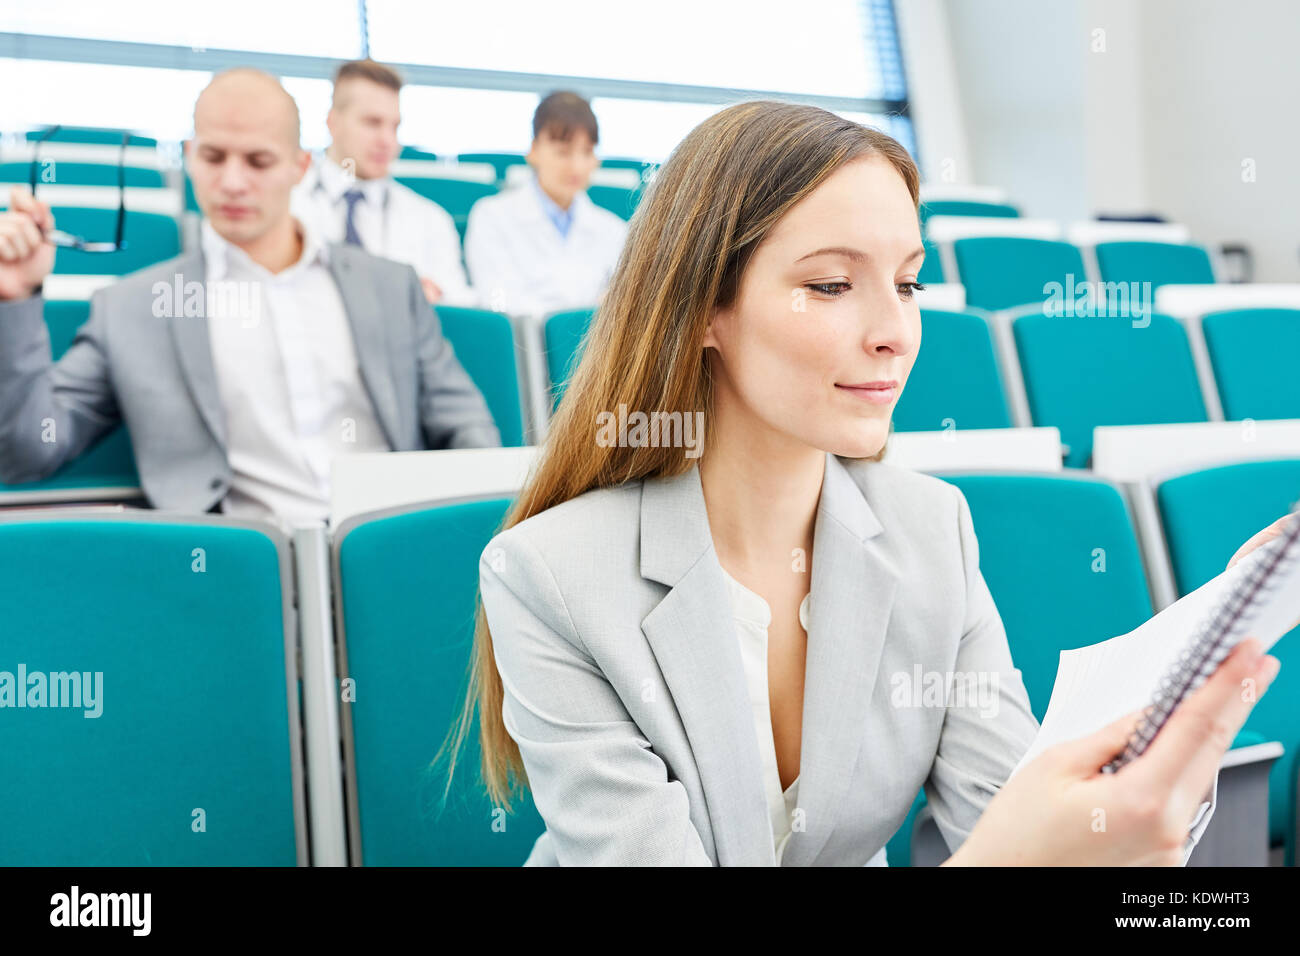 Young woman as medical school student study with diligence - Stock Image